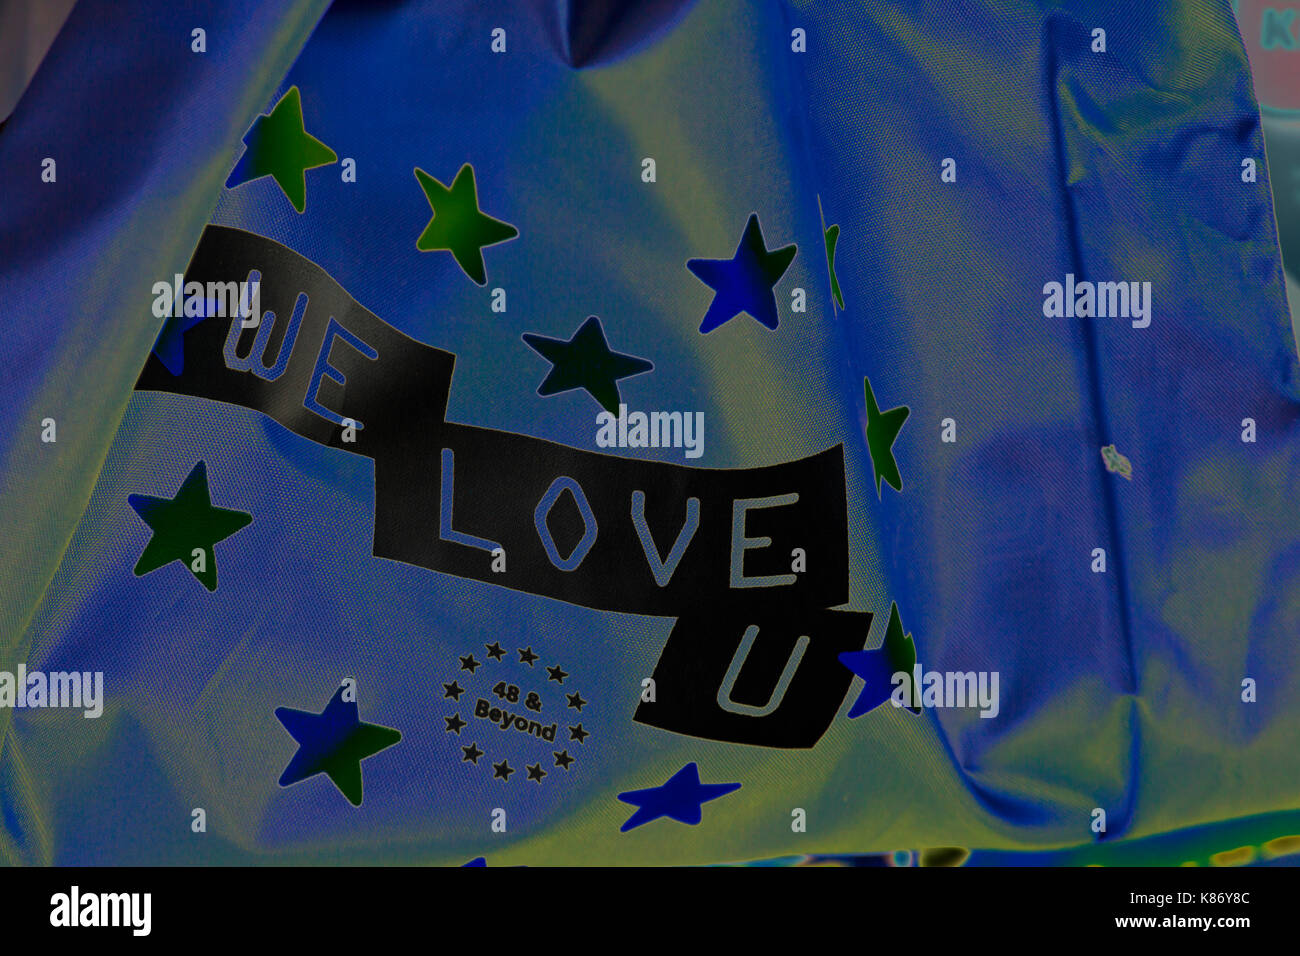 We Love U flag 48 & Beyond at Stop Brexit Demonstration at Bournemouth, Dorset in September - solarised - Stock Image